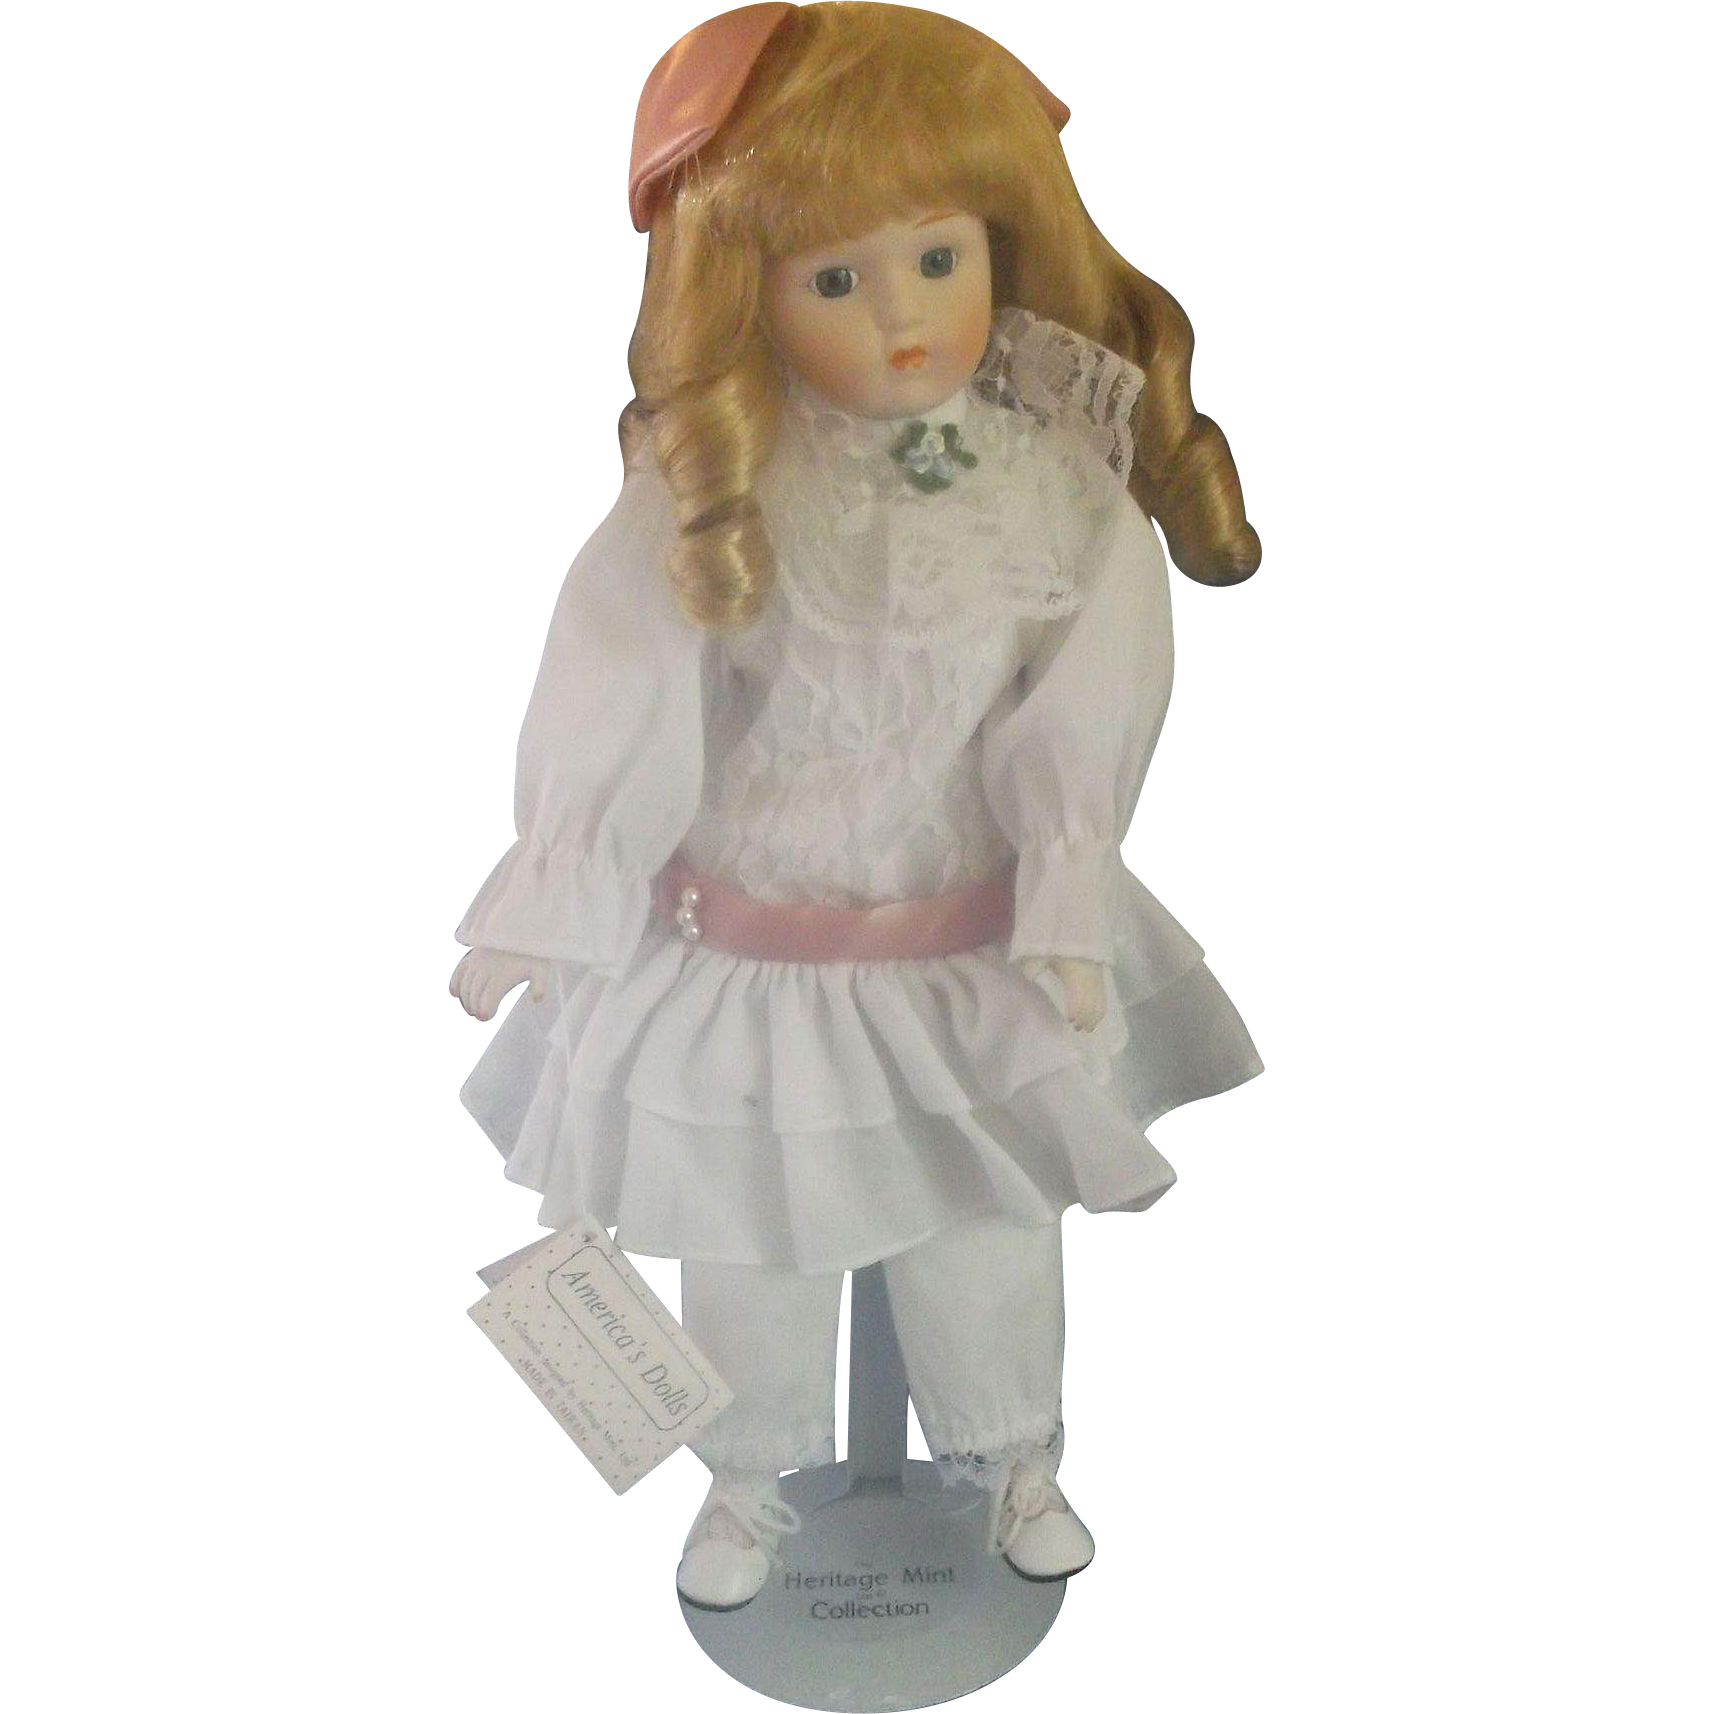 Heritage Mint America's Dolls Candy Porcelain Bisque Doll Blonde Blue Eyes White Dress 1980s